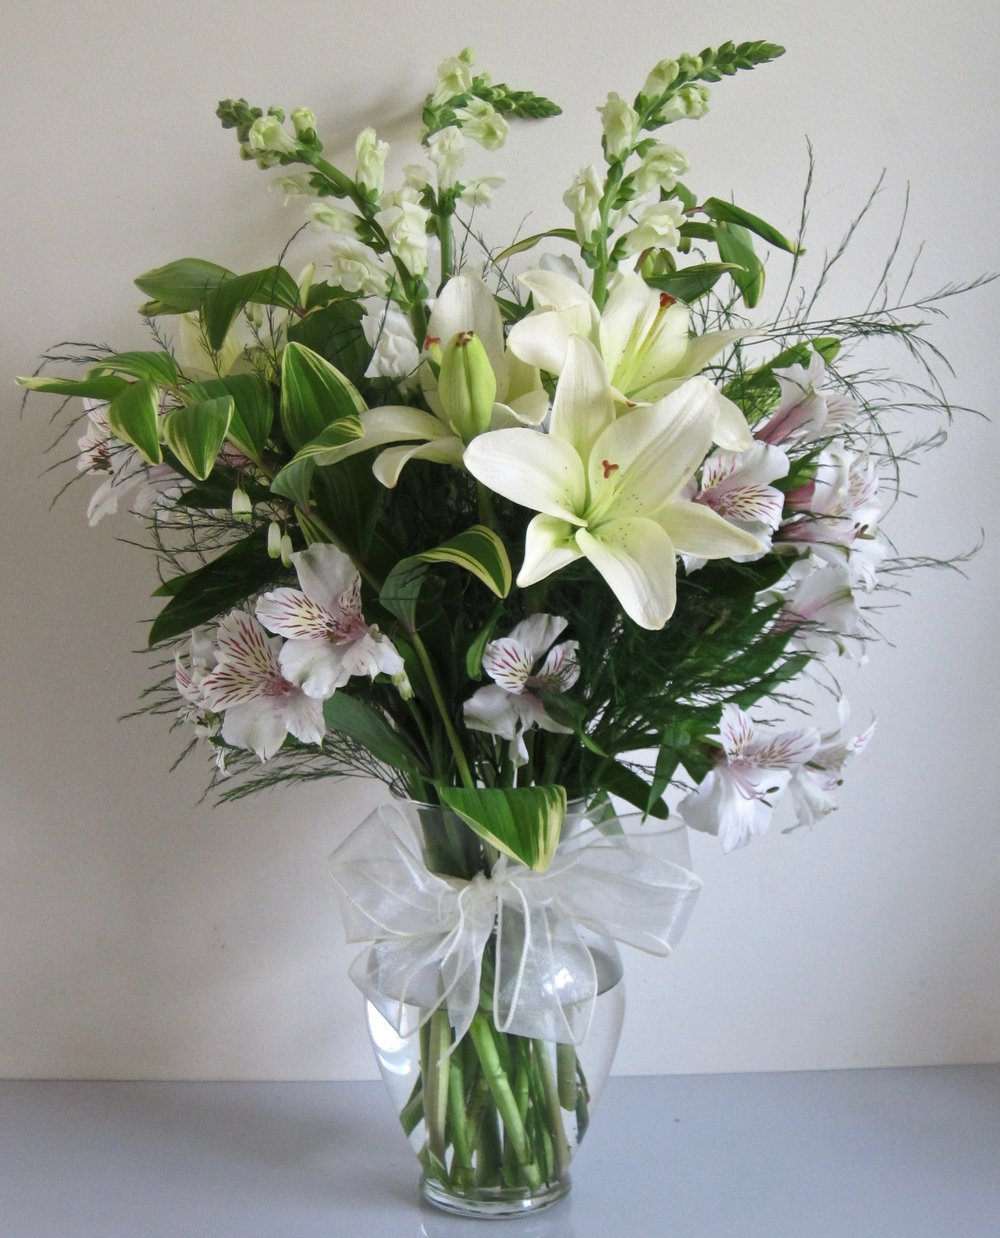 WHITE BOUQUET of lilies, snapdragons and ferns, $55.